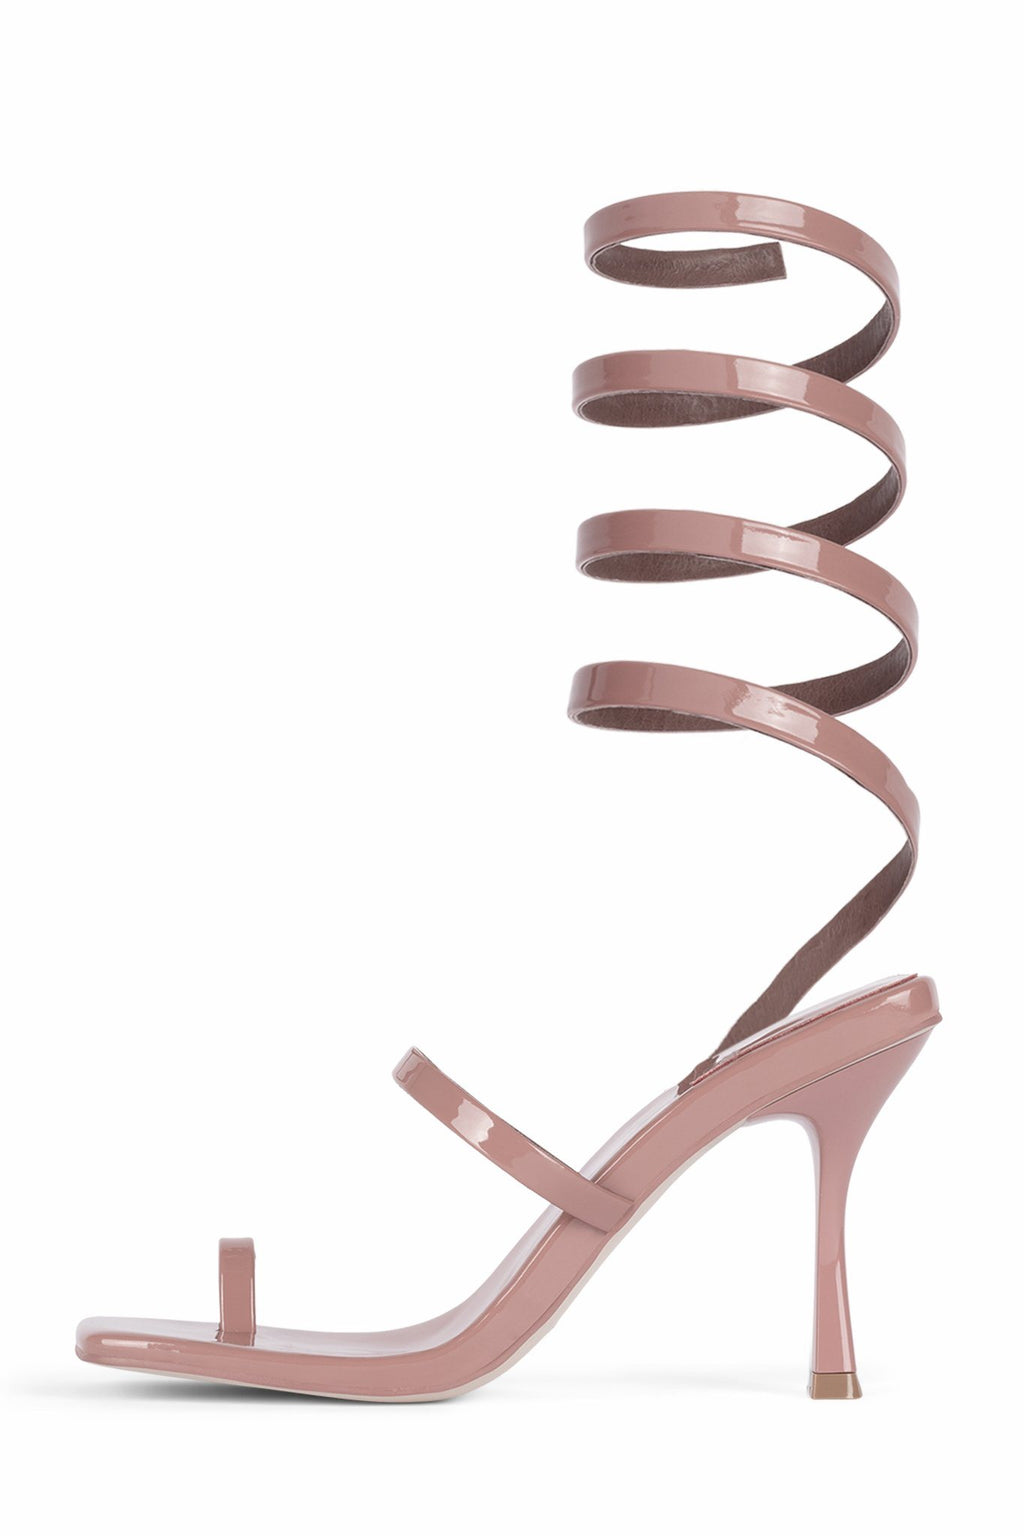 LUZIA Heeled Sandal Jeffrey Campbell Dusty Blush Patent 5